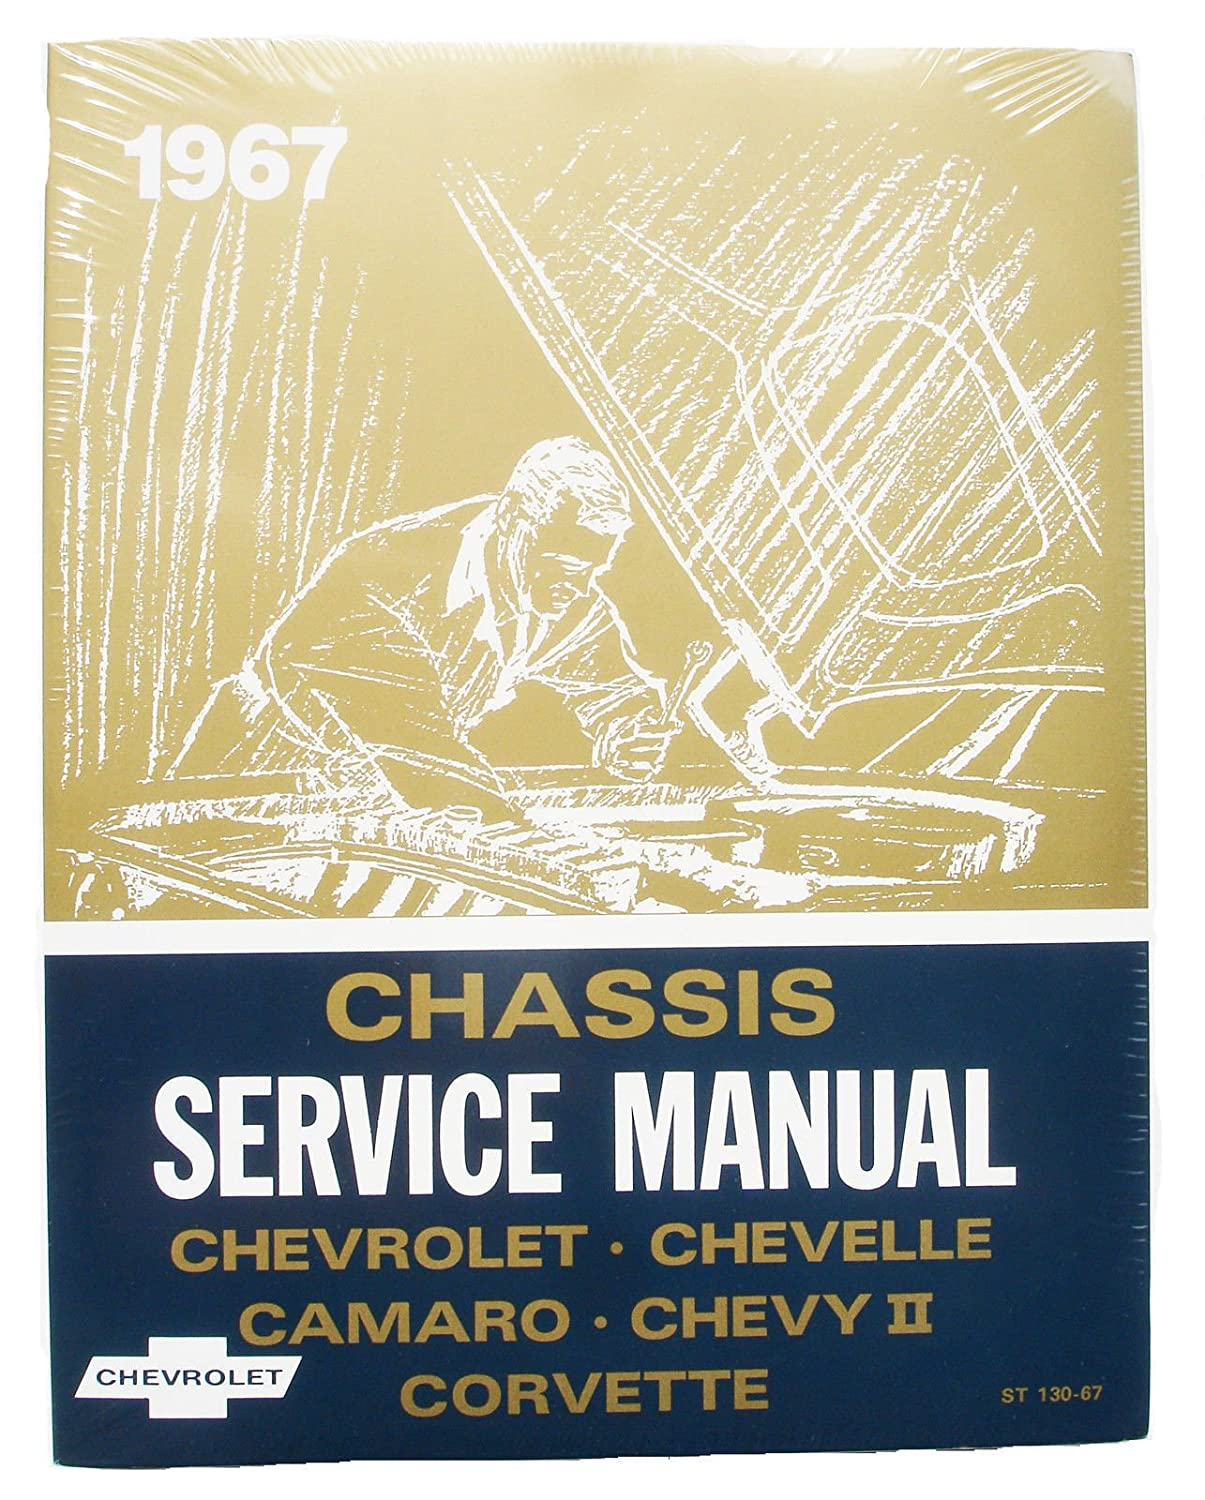 Amazon.com: 1967 Chevrolet CAR Chassis Service Manual 67 Chevelle Chevy II  Corvette Camaro: Automotive